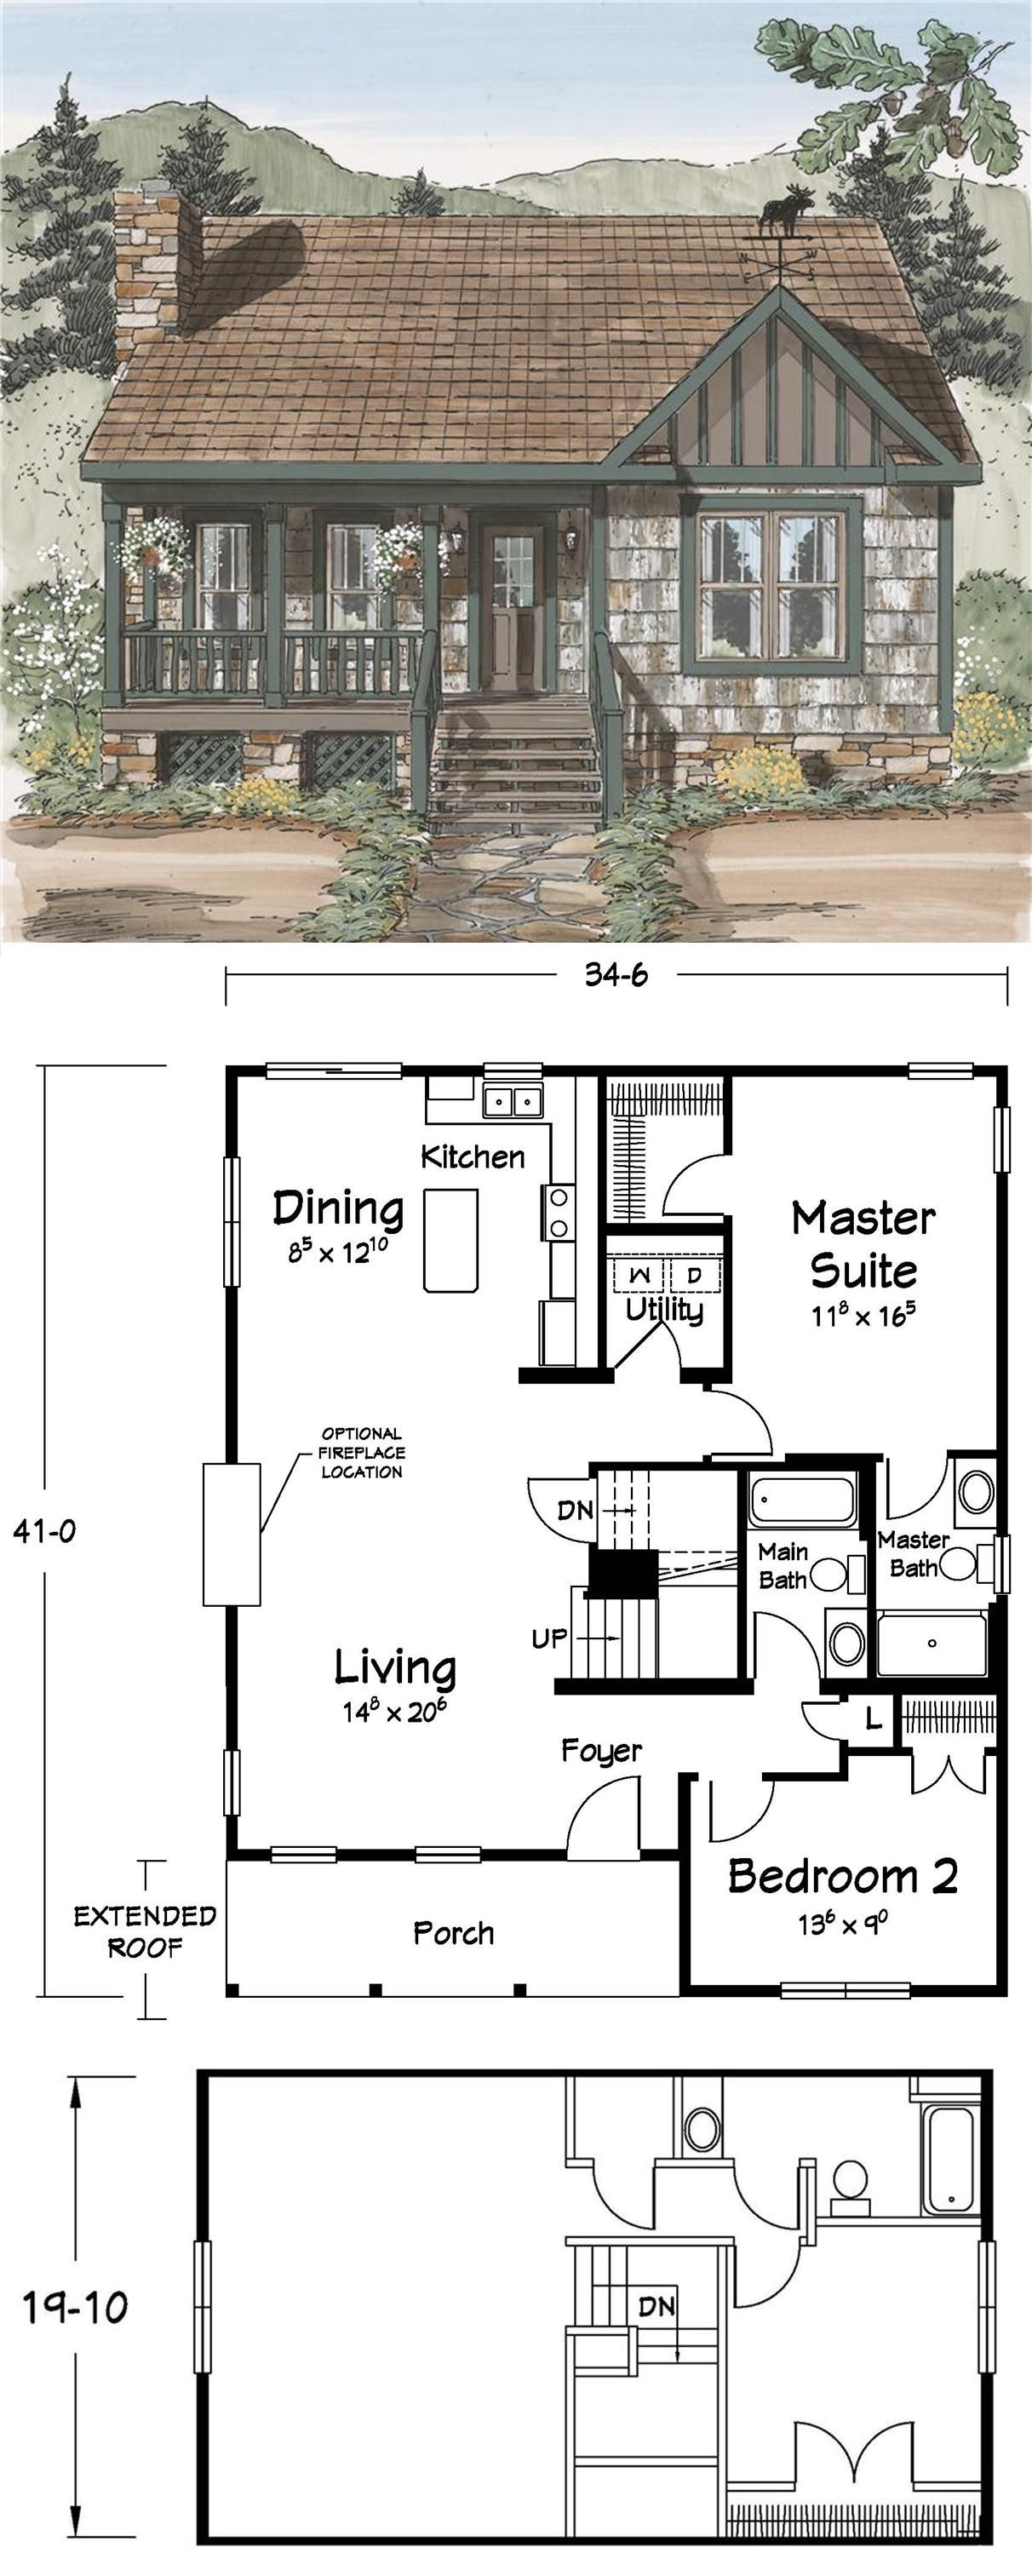 Super Easy to Build Tiny House Plans – Small House Floor Plans With Basement